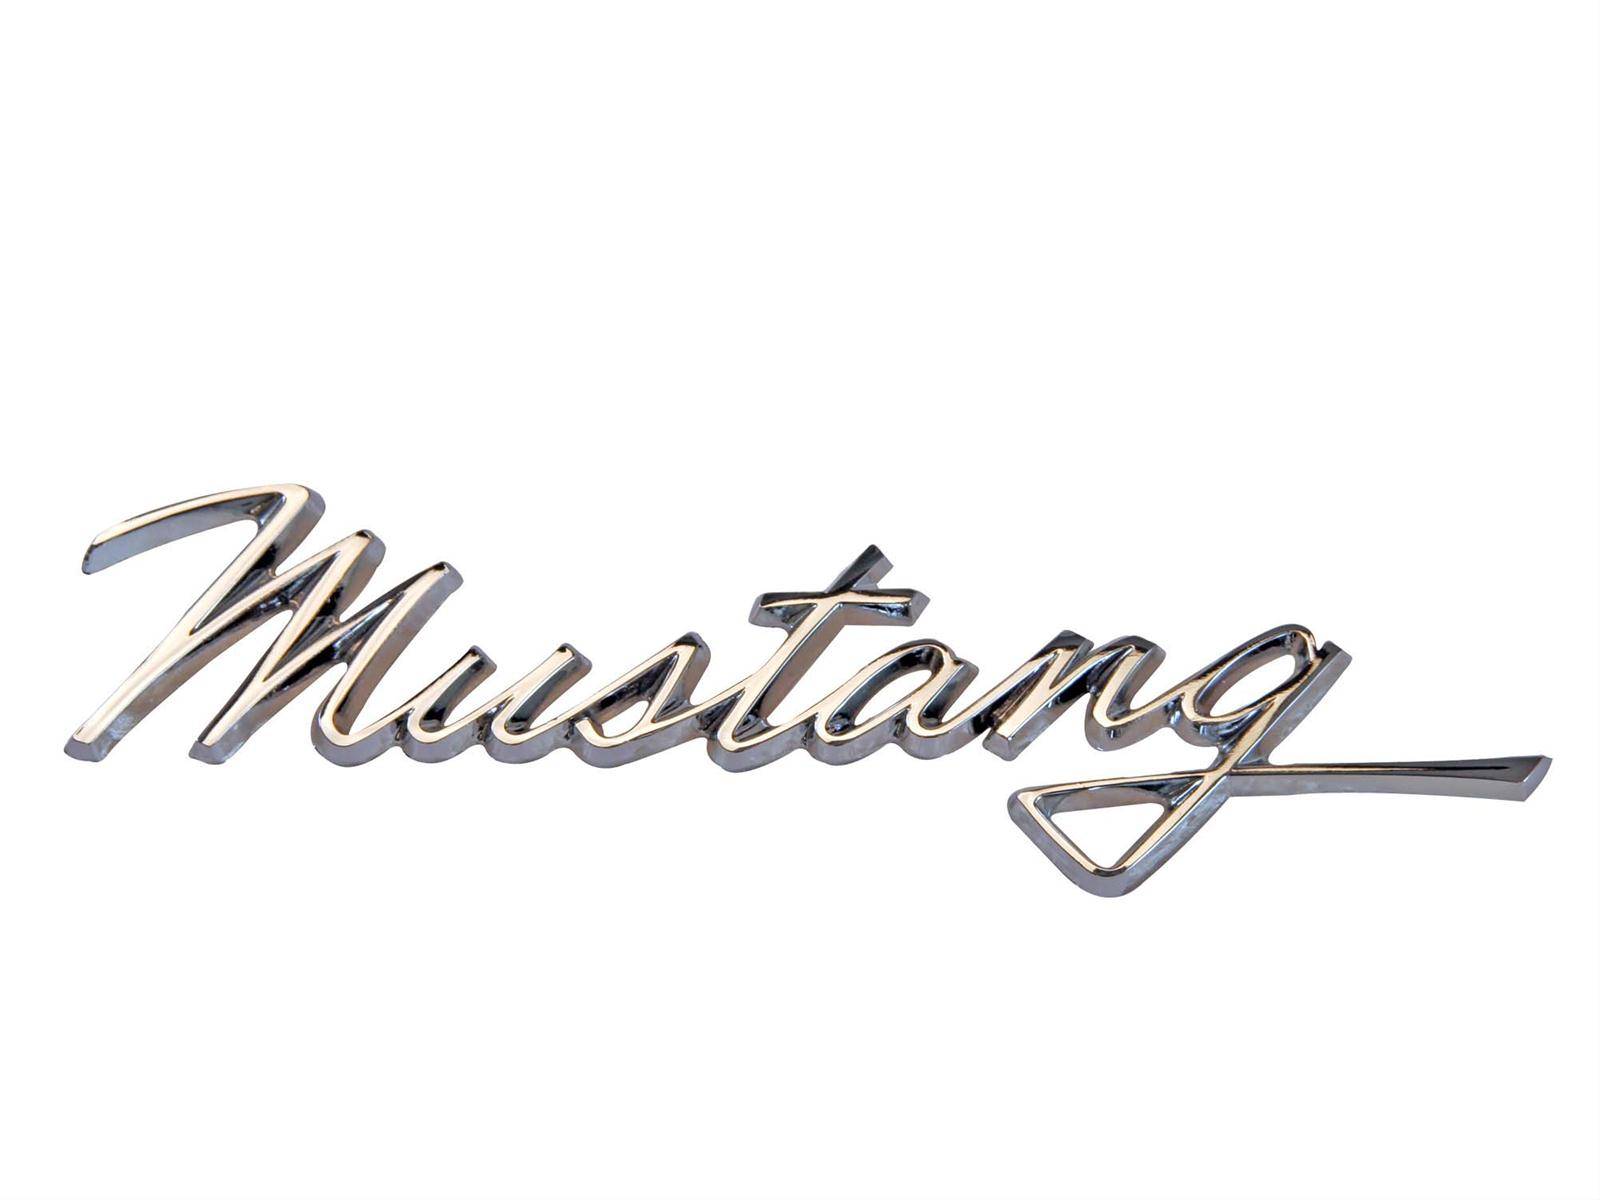 Scott Drake Emblem Fender Location Chrome Mustang Script